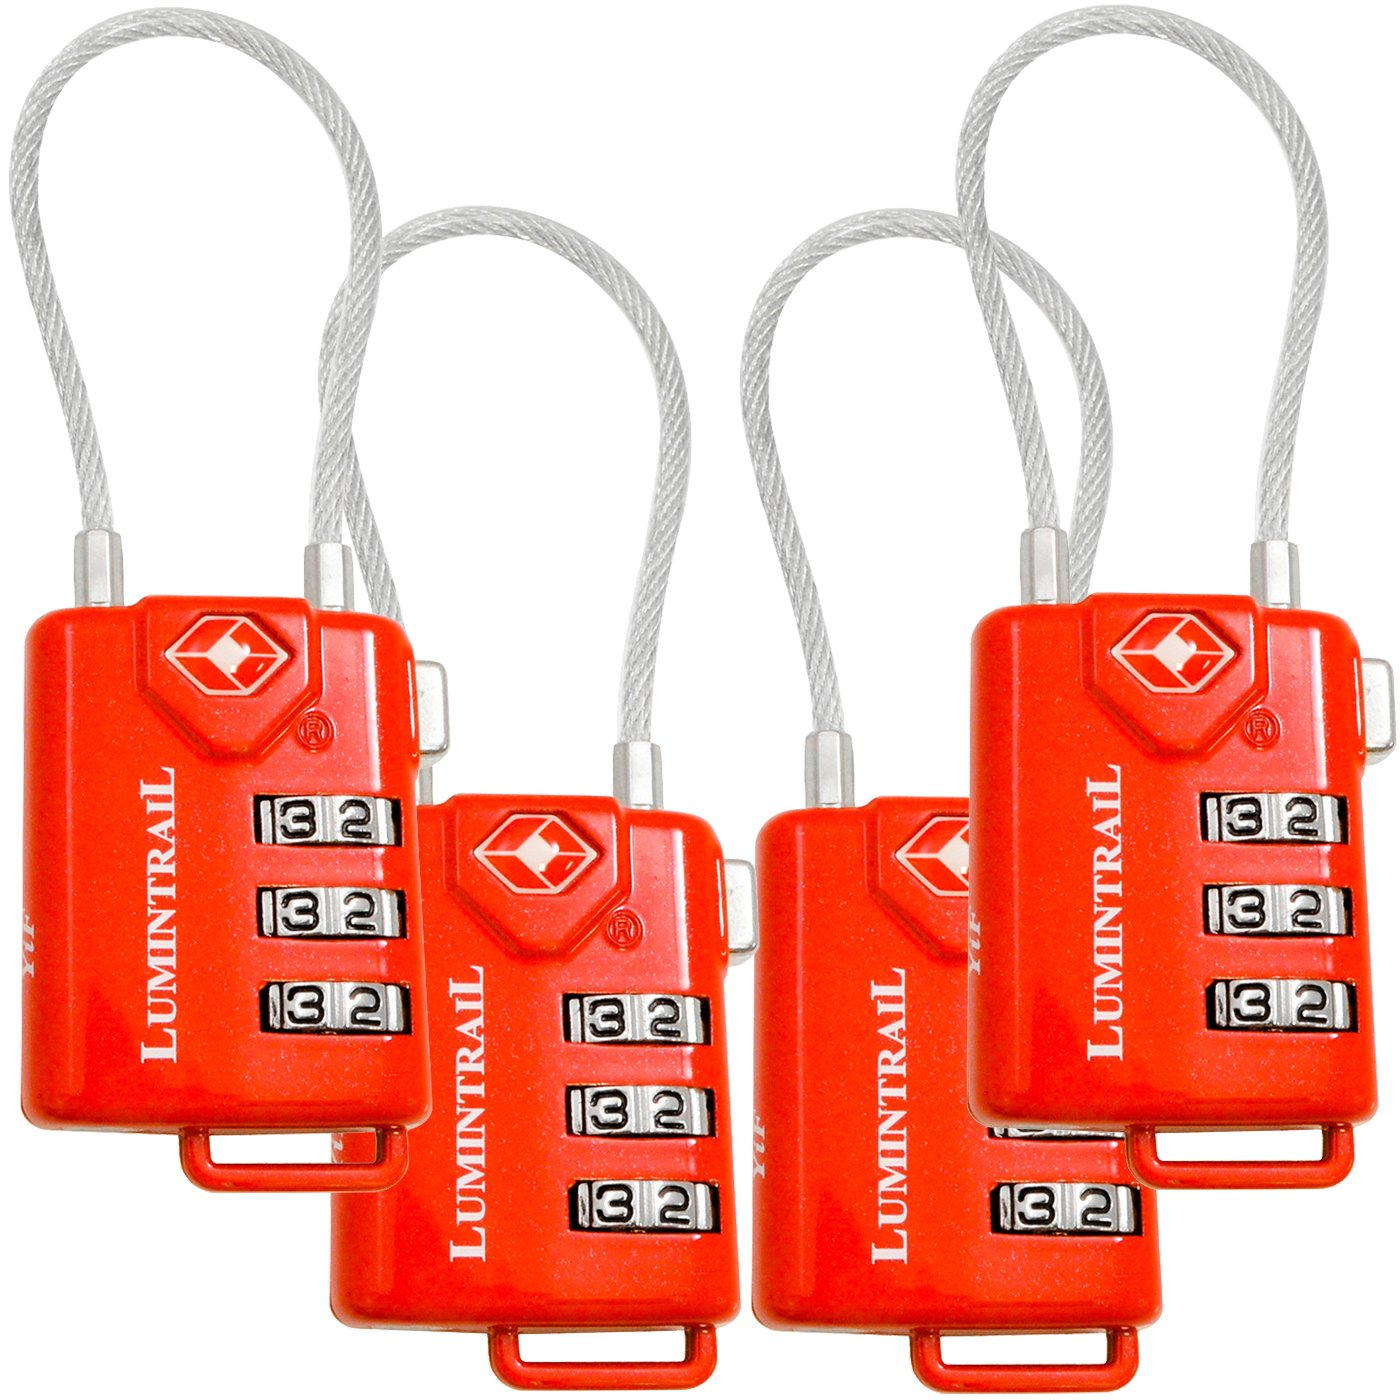 Lumintrail 4 Pack TSA Approved Cable Travel Locks with Personalized Combination LKTSA21105